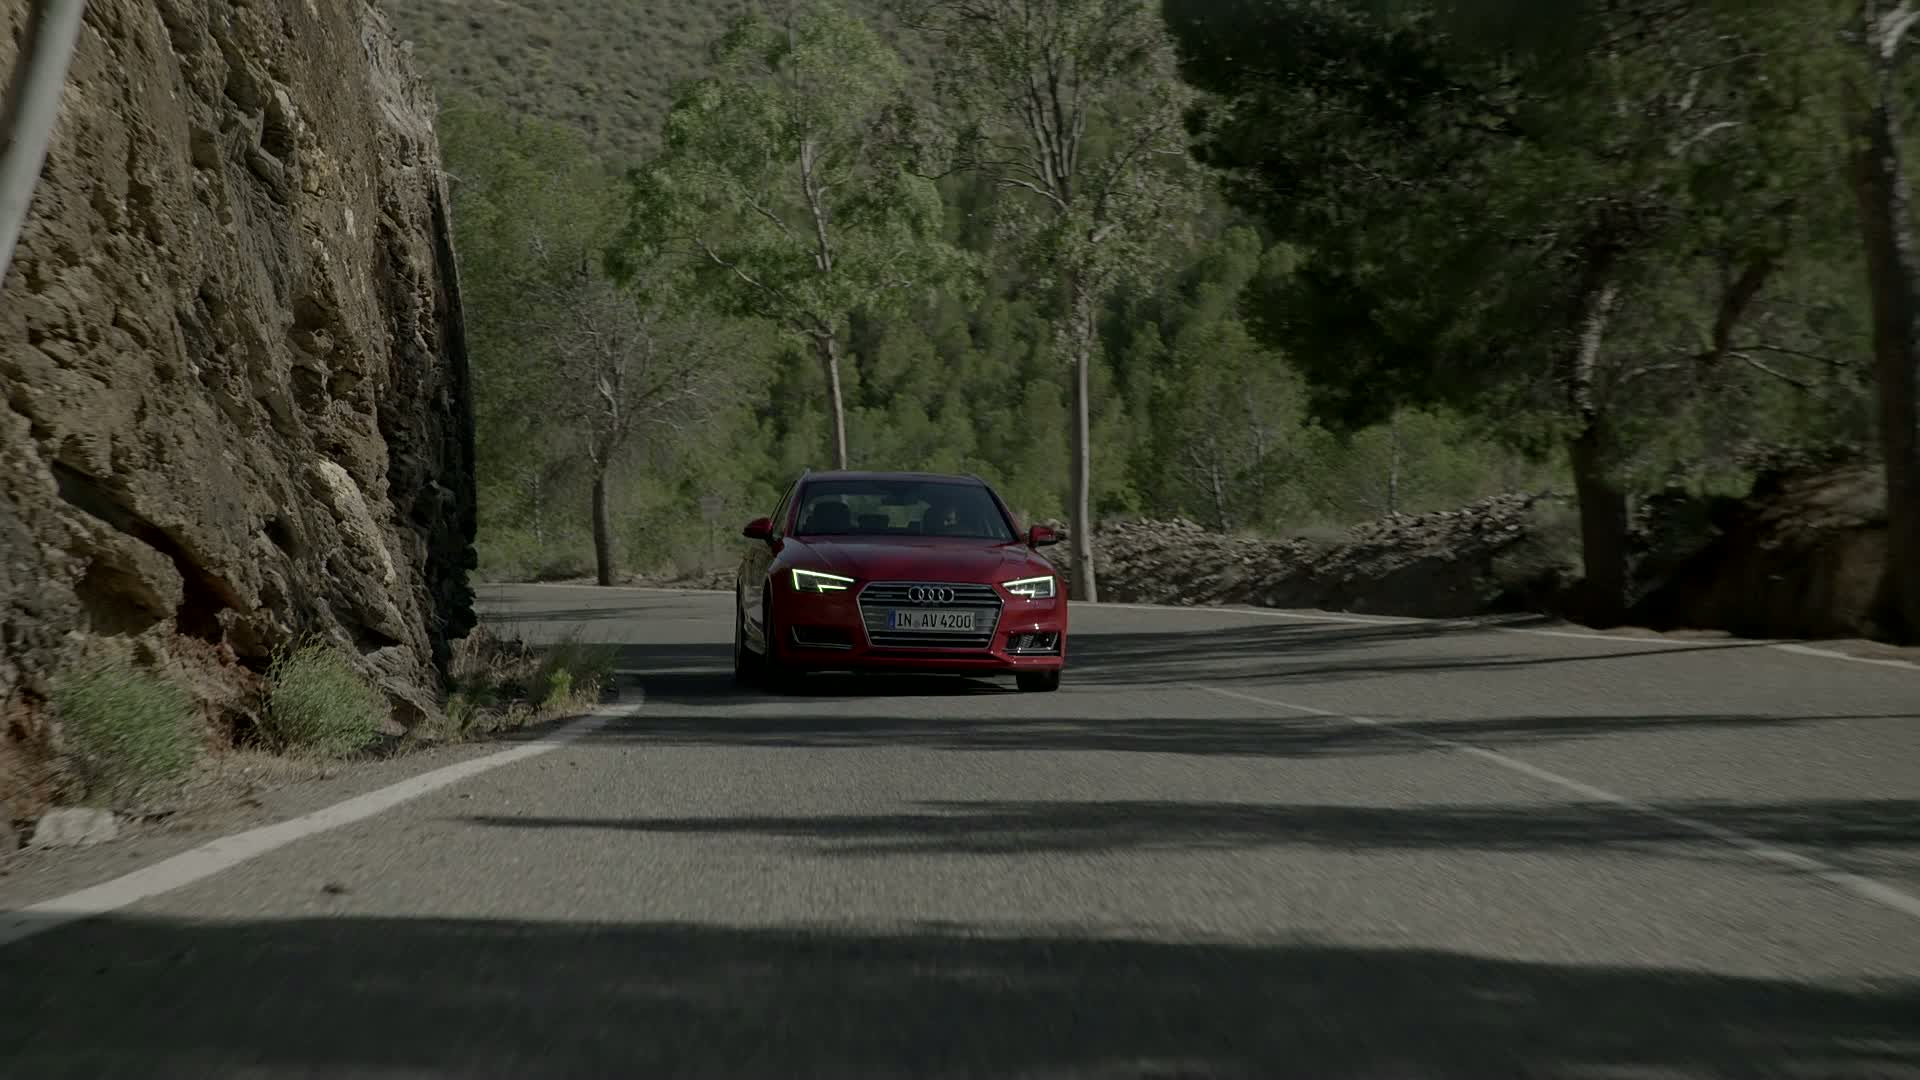 Audi A4 Emotion Trailer - Short